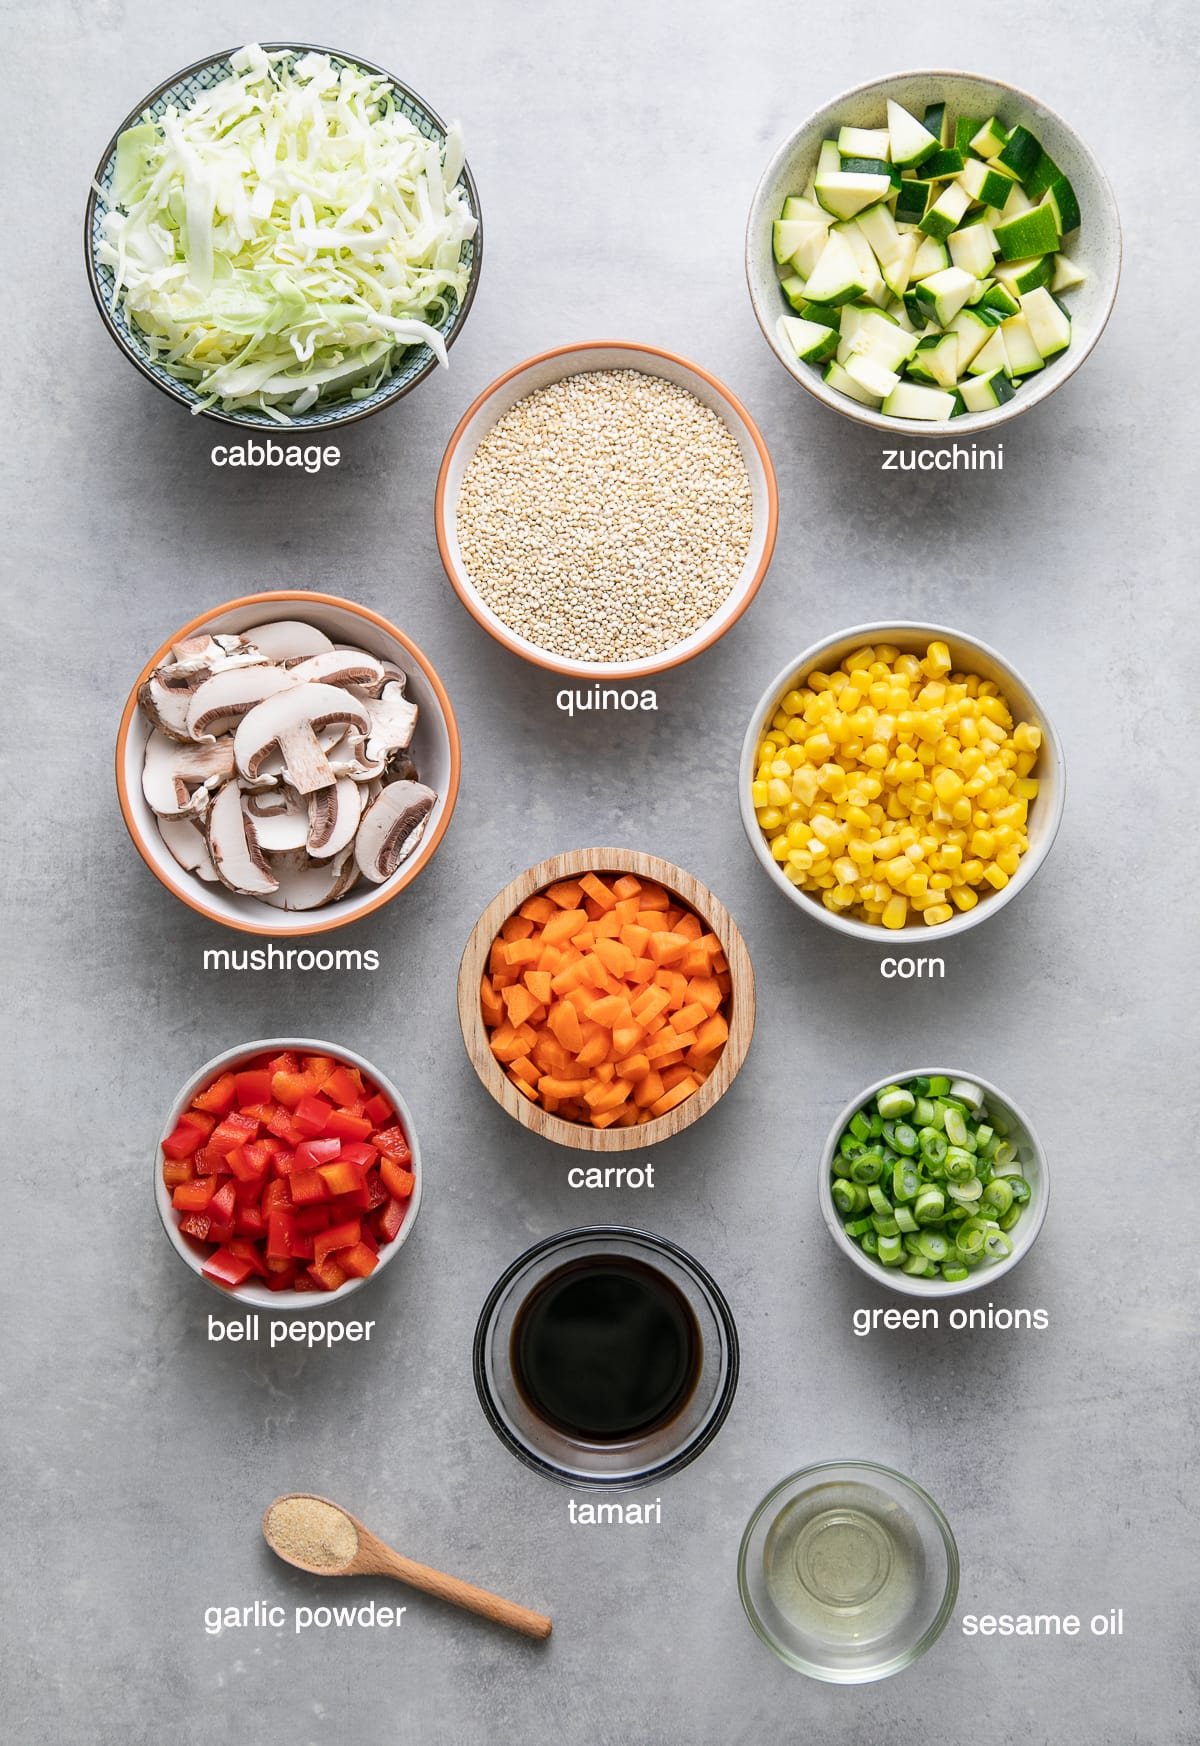 top down view of ingredients used to make quinoa fried rice with vegetables.